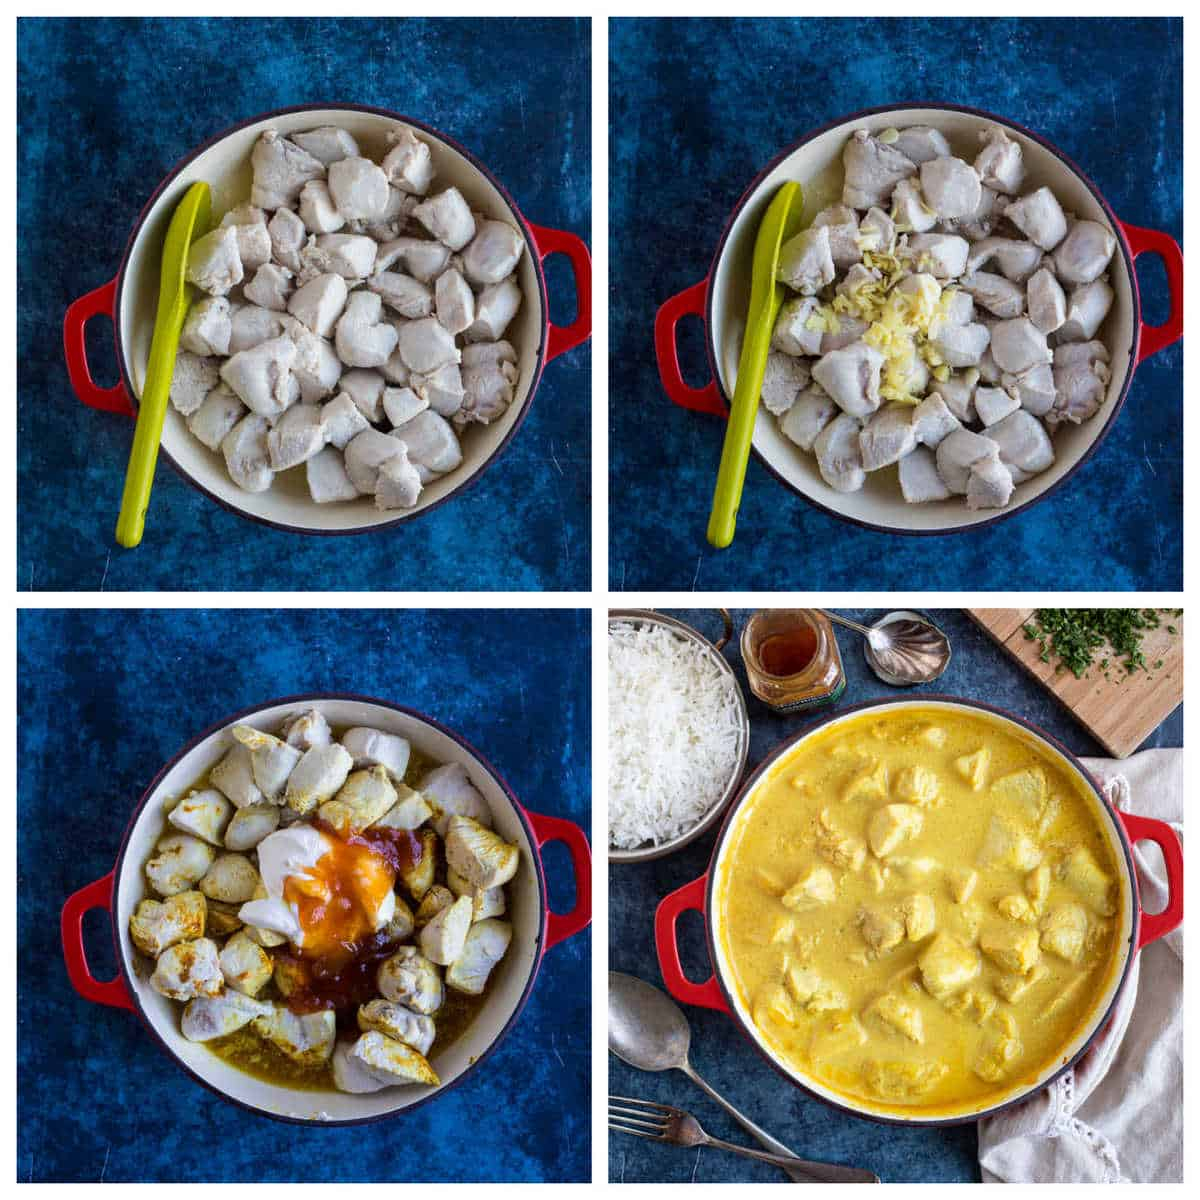 Step by step photo instructions for making mango chutney chicken curry.